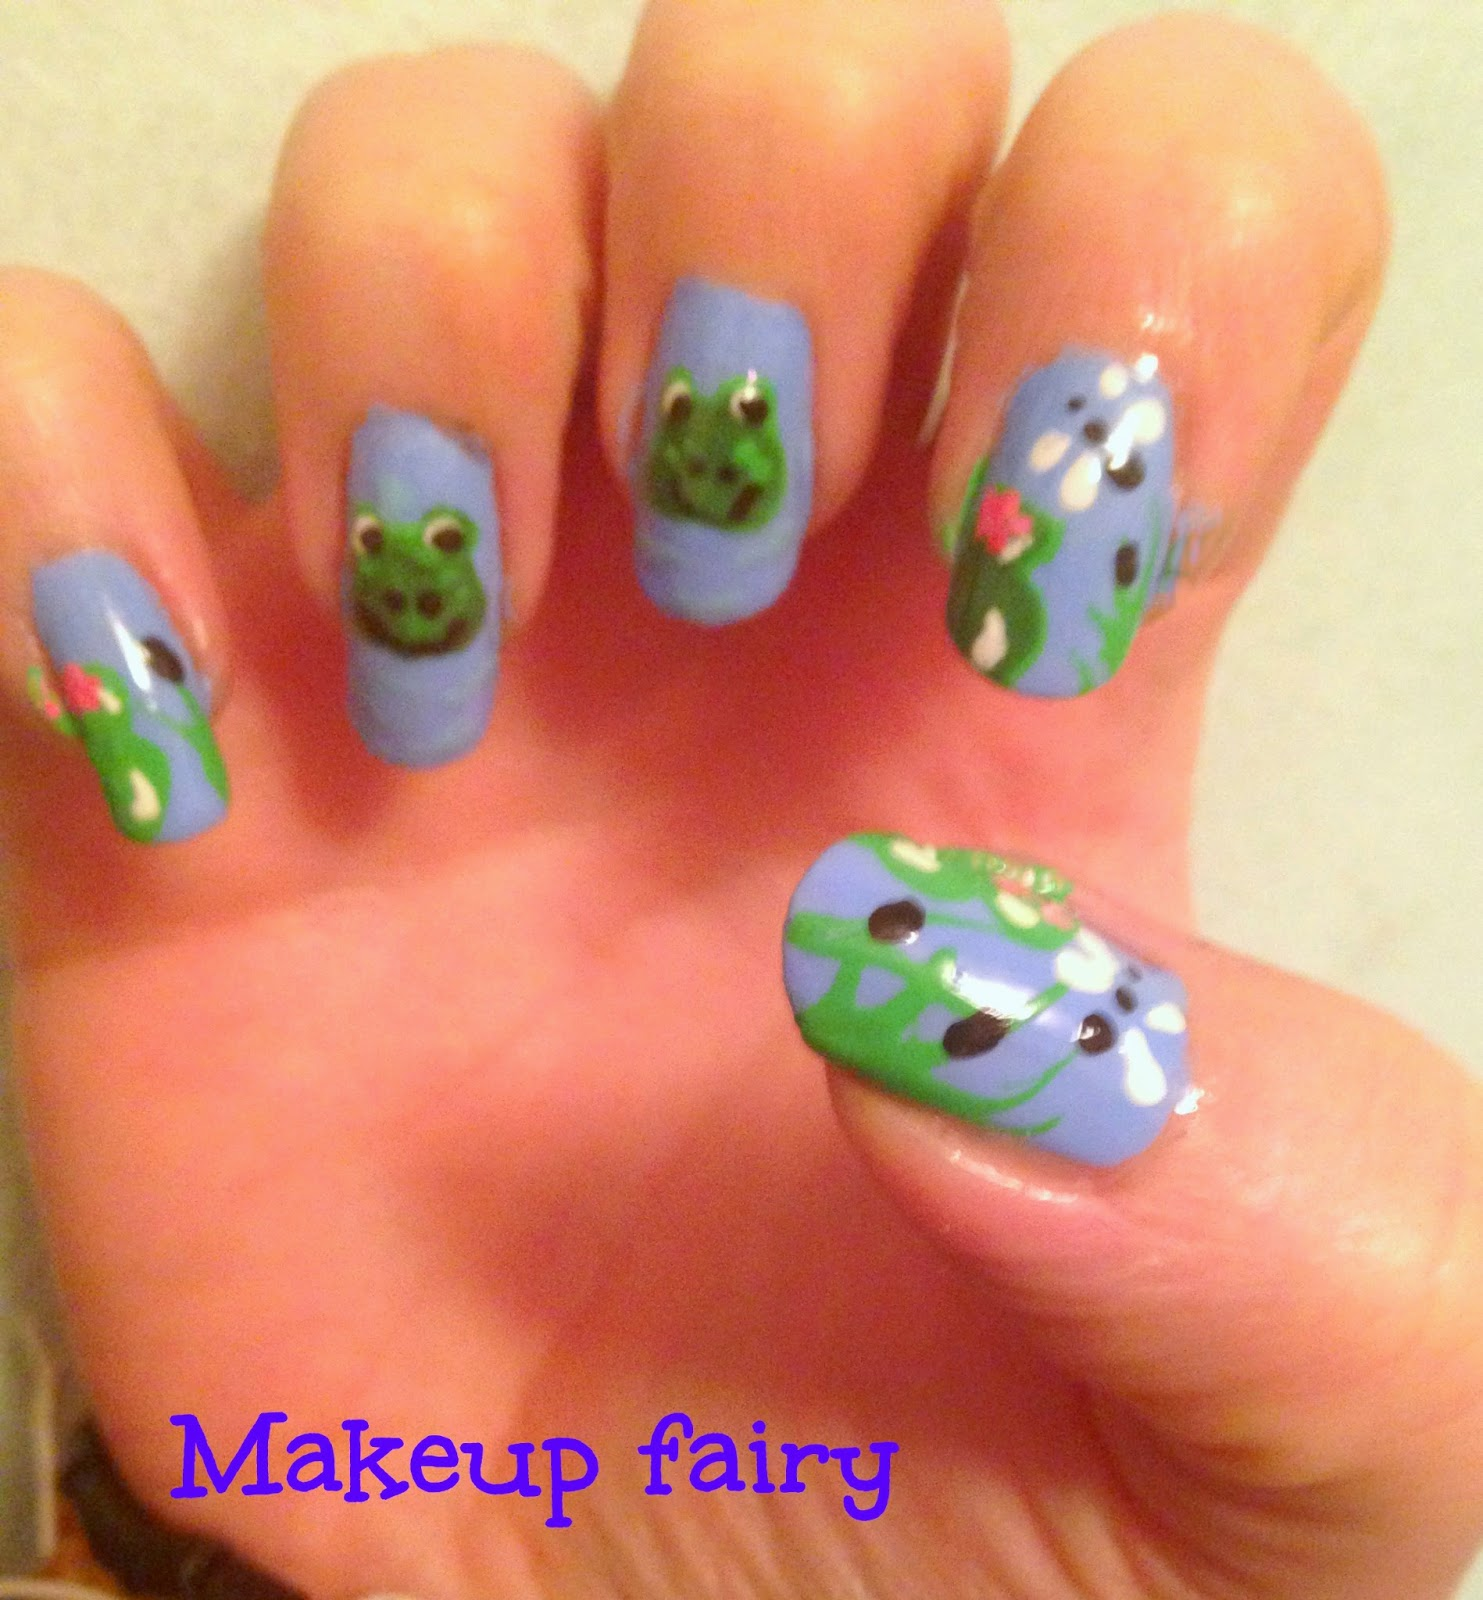 Tinklesmakeup: Happy frog nail art